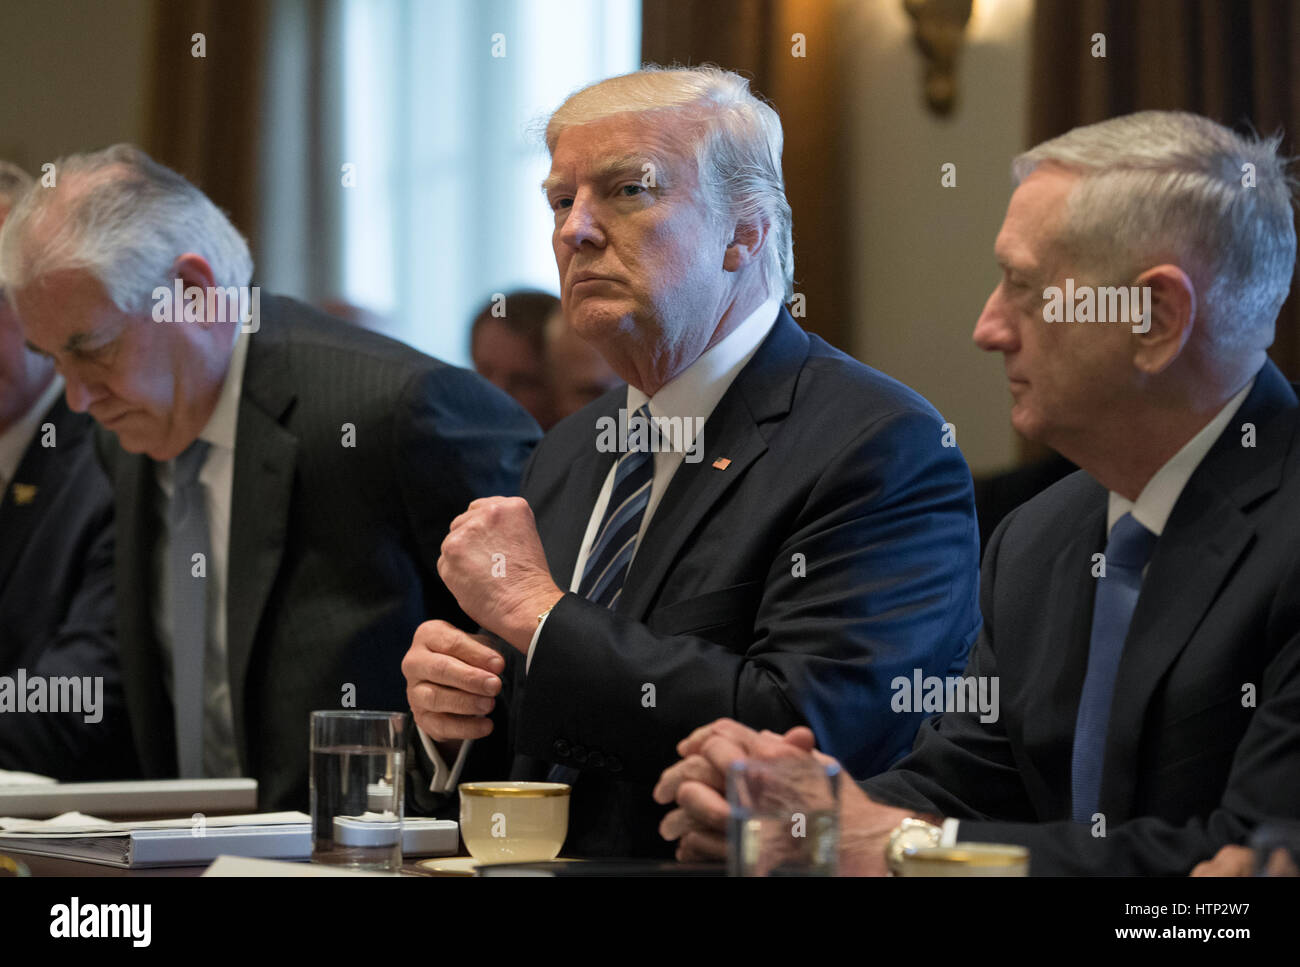 Washington DC, USA 13th March, 2017 US President Donald J Trump (C) holds a meeting with members of his Cabinet Stock Photo